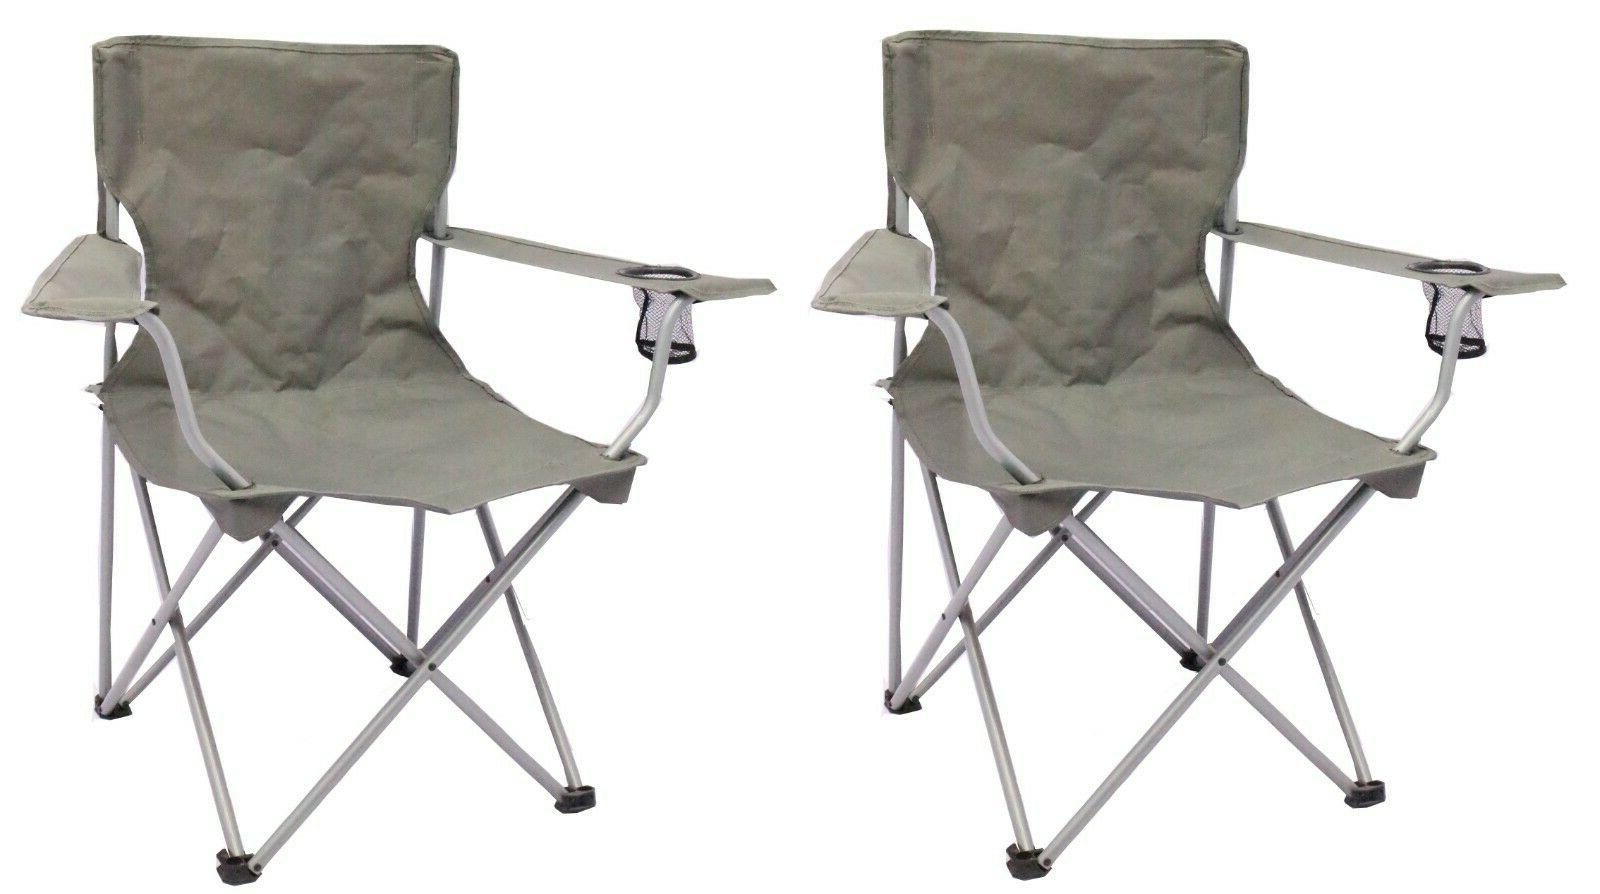 Foldable Camping Chair w/ Cup Holder Polyester Fabric Steel